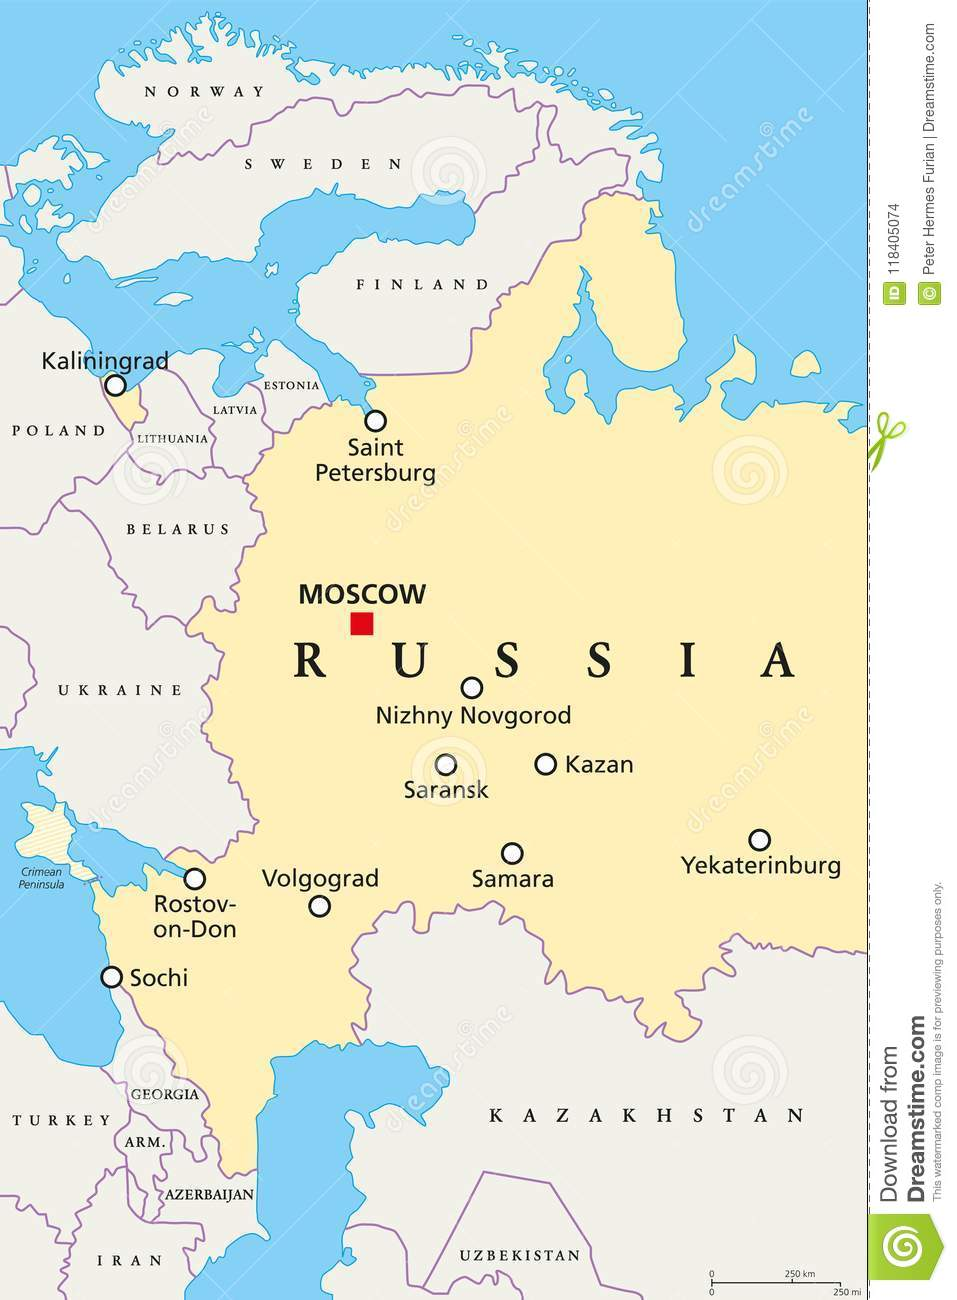 Venues Of Football World Cup In Russia, Map Stock Vector ... on markovo russia map, bashkiria russia map, yaroslavl russia map, vladivostok map, grozny russia map, ufa russia map, novgorod russia map, yurga russia map, moscow map, elista russia map, warsaw russia map, crimea russia map, tatarstan russia map, irkutsk map, tula russia map, samara russia map, serpukhov russia map, astrakhan russia map, tynda russia map, volsk russia map,